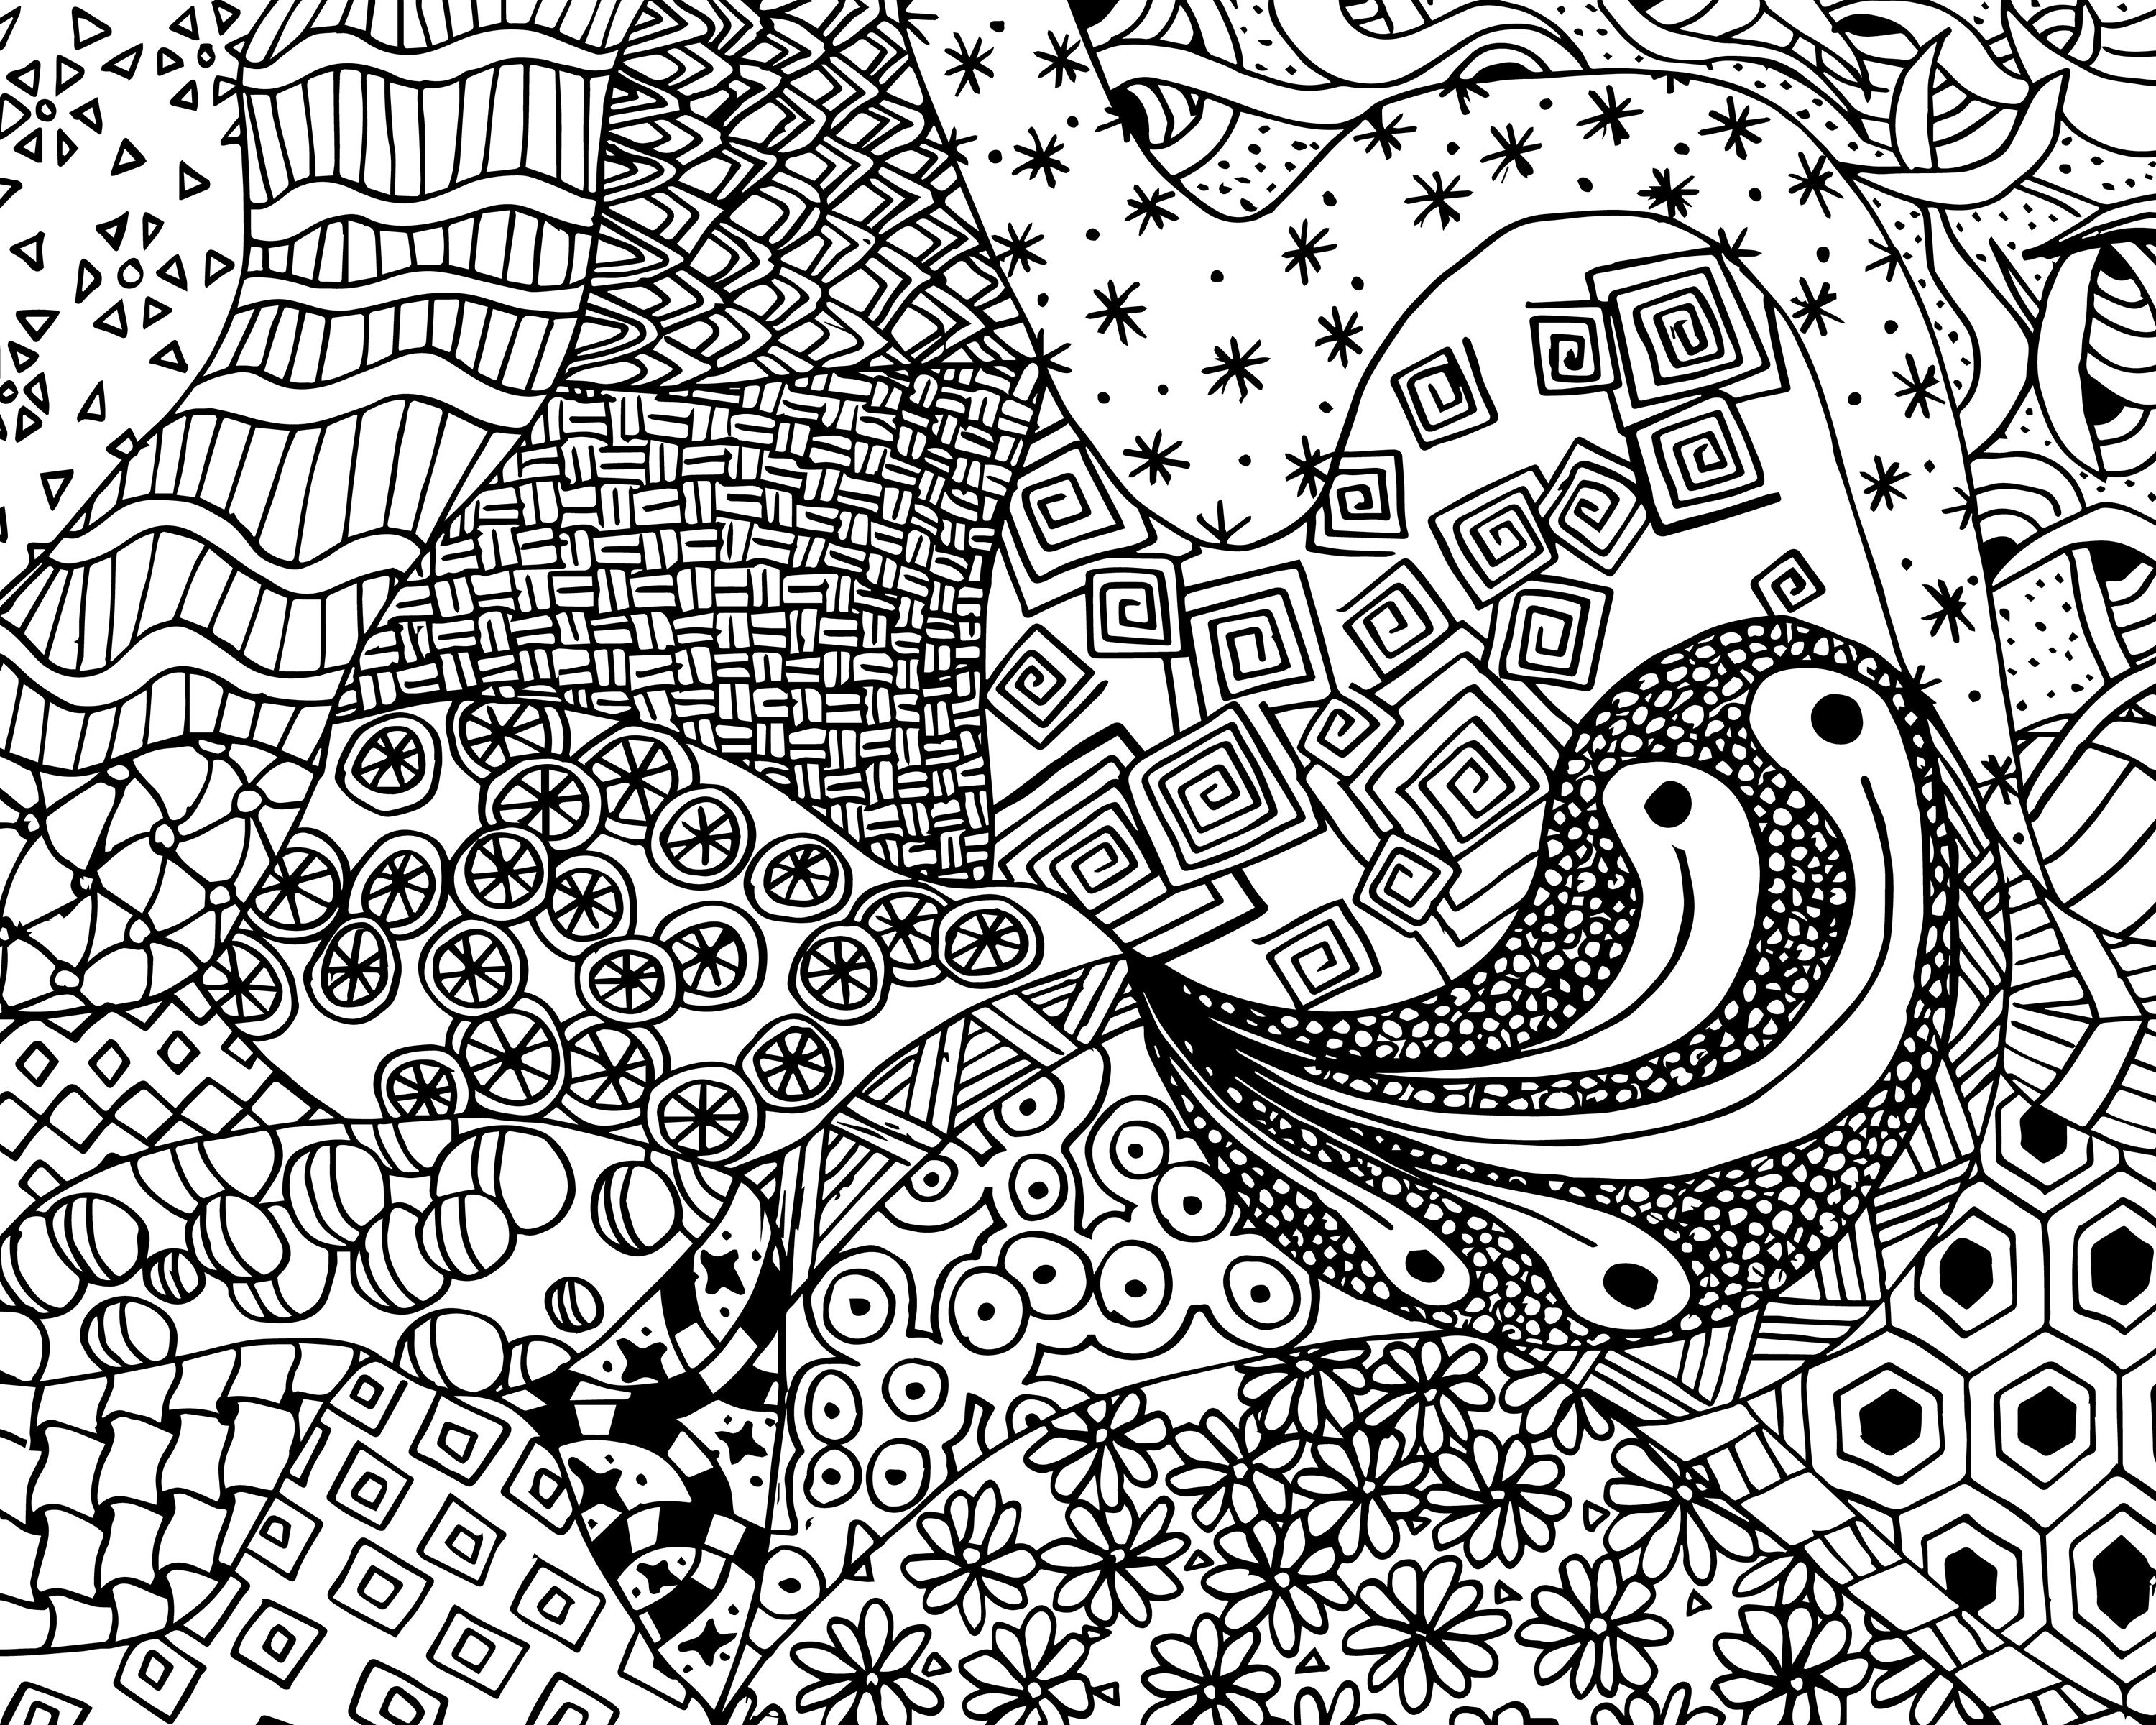 Zendoodle Coloring Pages Free Zen Doodle Design Adult Coloring Page  Free Printable